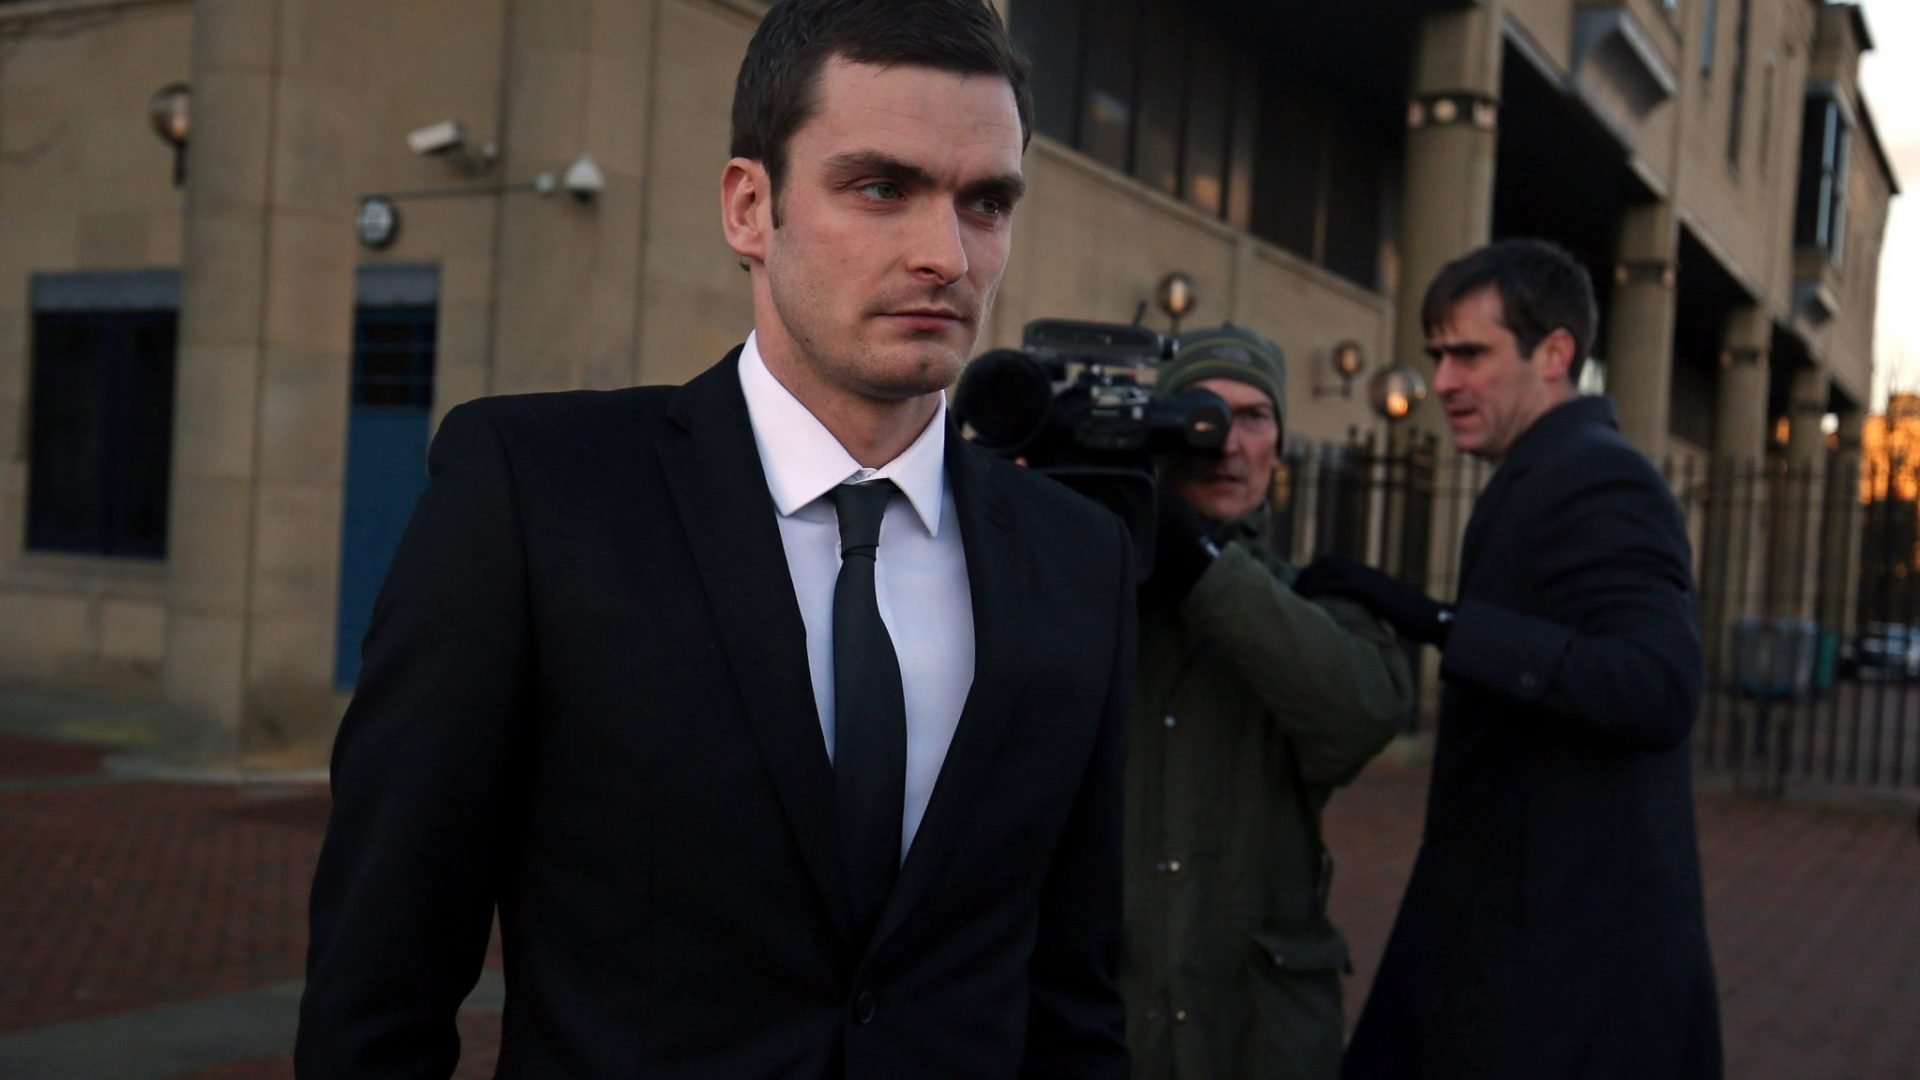 Adam Johnson sacked over guilty pleas